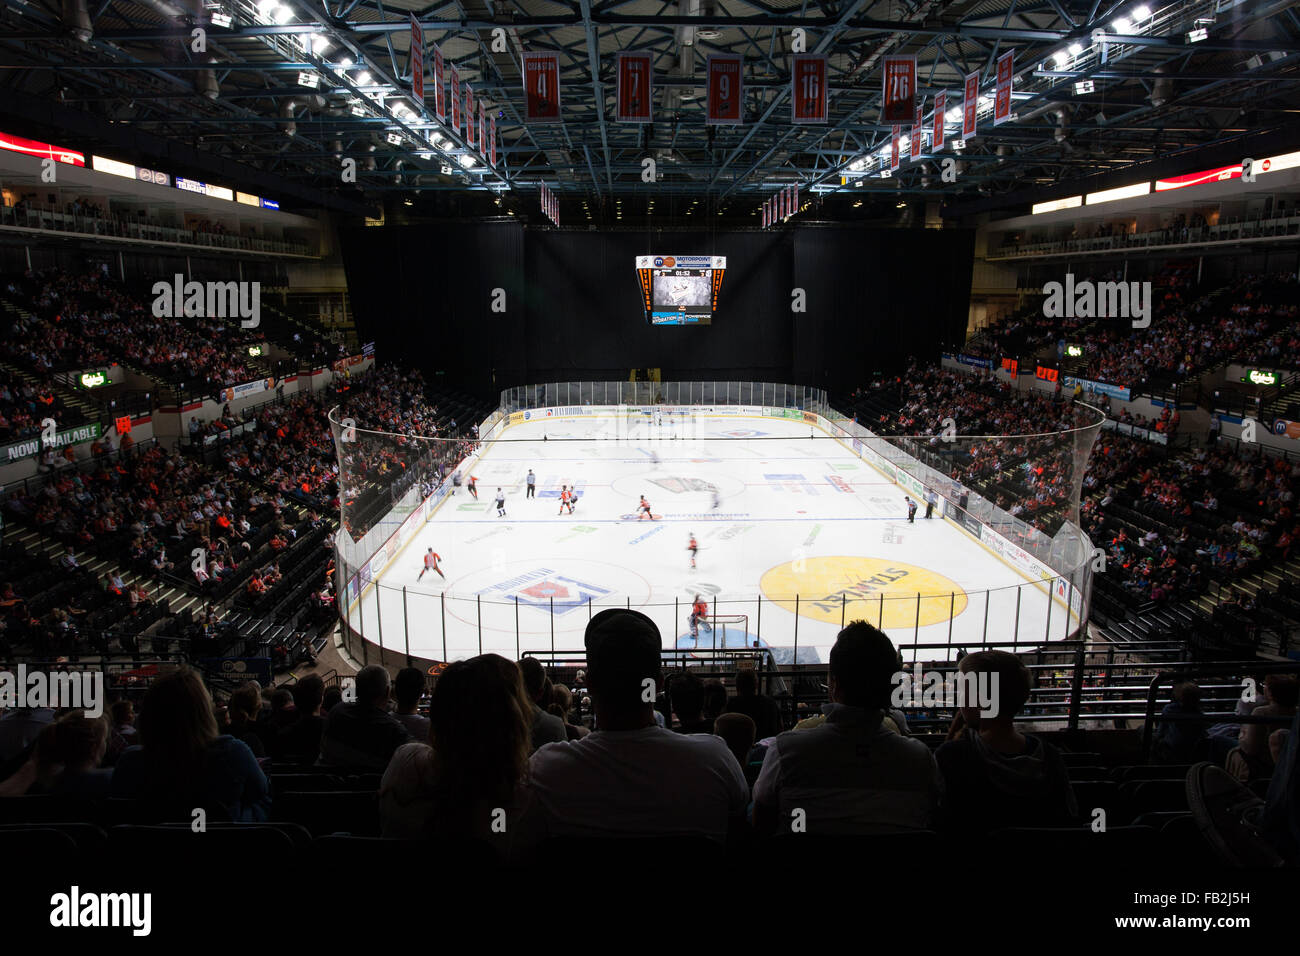 Sheffield Steelers ice hockey team play at the Motorpoint Sheffield Arena in Sheffield, South Yorkshire. - Stock Image